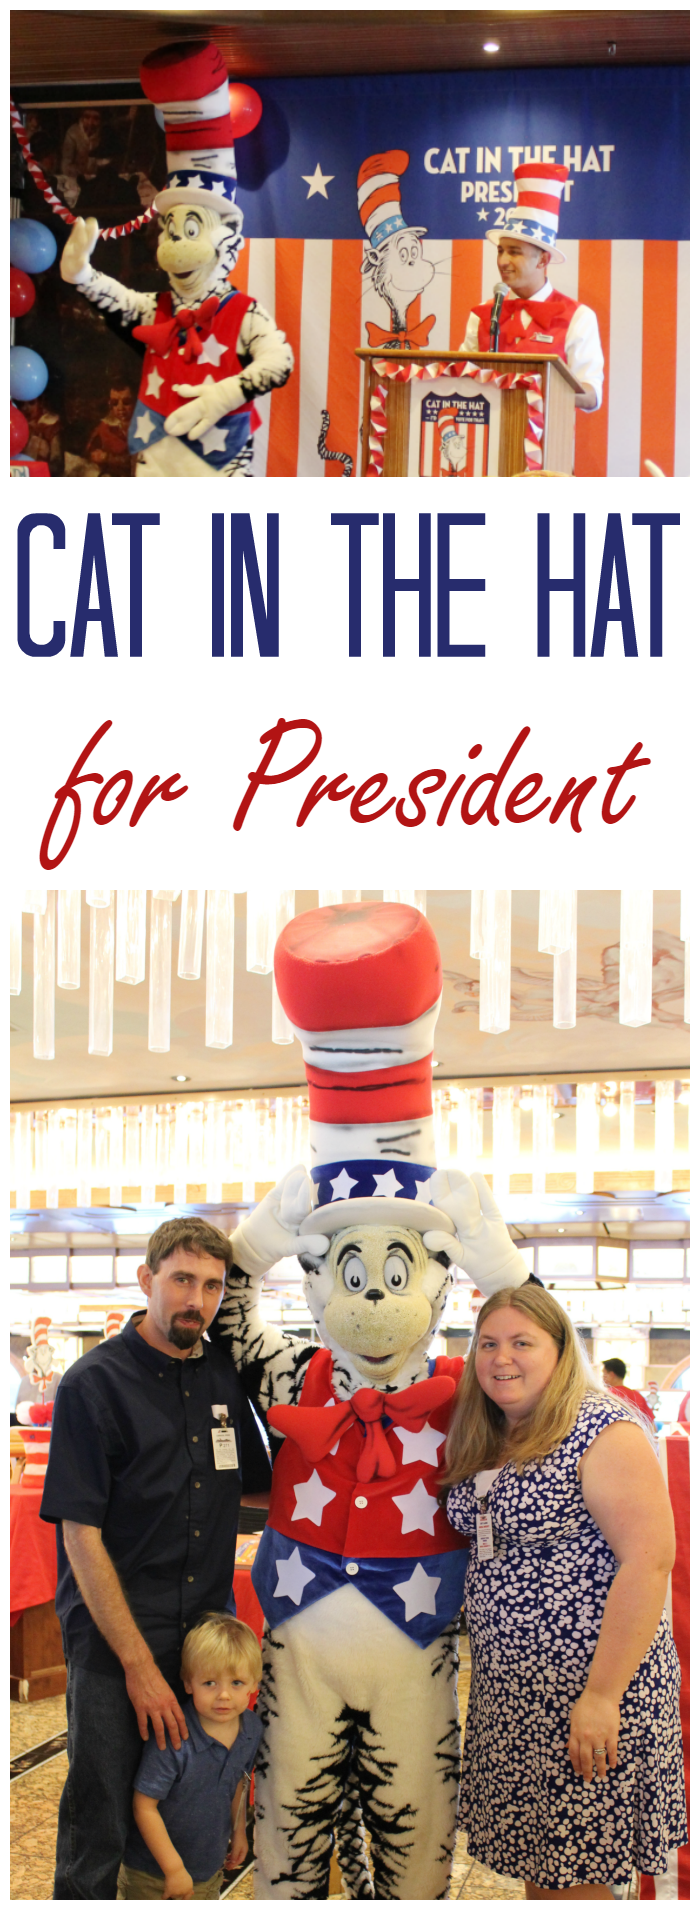 Carnival wants you to Vote Cat in the Hat for President! Join the campaign trail on Carnival ships! A new Dr. Seuss book teaches kids all about the election process.